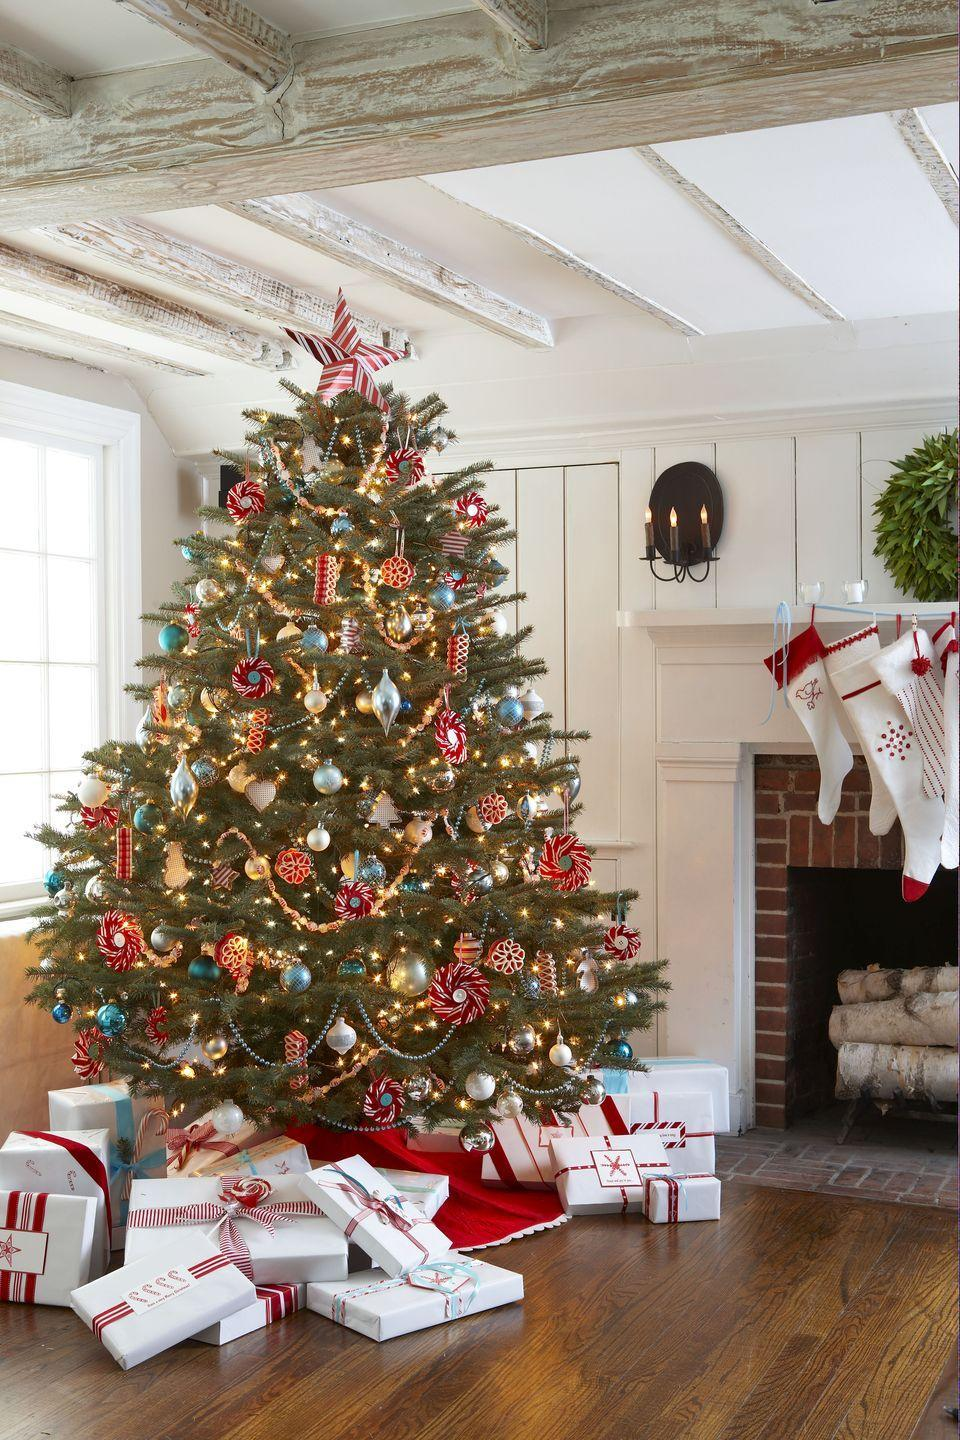 """<p>Aqua accents take the <a href=""""https://www.goodhousekeeping.com/holidays/christmas-ideas/how-to/g1759/red-and-white-christmas-decorations/"""" rel=""""nofollow noopener"""" target=""""_blank"""" data-ylk=""""slk:traditional color combo"""" class=""""link rapid-noclick-resp"""">traditional color combo</a> to the next level. Tape together garlands of <a href=""""https://www.amazon.com/SweetGourmet-Arcor-Starlight-Peppermint-Pinwheel/dp/B004QLRW50/?tag=syn-yahoo-20&ascsubtag=%5Bartid%7C10055.g.2707%5Bsrc%7Cyahoo-us"""" rel=""""nofollow noopener"""" target=""""_blank"""" data-ylk=""""slk:wrapped mints"""" class=""""link rapid-noclick-resp"""">wrapped mints</a> and hang old-school <a href=""""https://www.amazon.com/Thin-Peppermint-Ribbon-Candy-Sevignys/dp/B0006UBMCO?tag=syn-yahoo-20&ascsubtag=%5Bartid%7C10055.g.2707%5Bsrc%7Cyahoo-us"""" rel=""""nofollow noopener"""" target=""""_blank"""" data-ylk=""""slk:ribbon candy"""" class=""""link rapid-noclick-resp"""">ribbon candy</a> to make things even sweeter. </p>"""